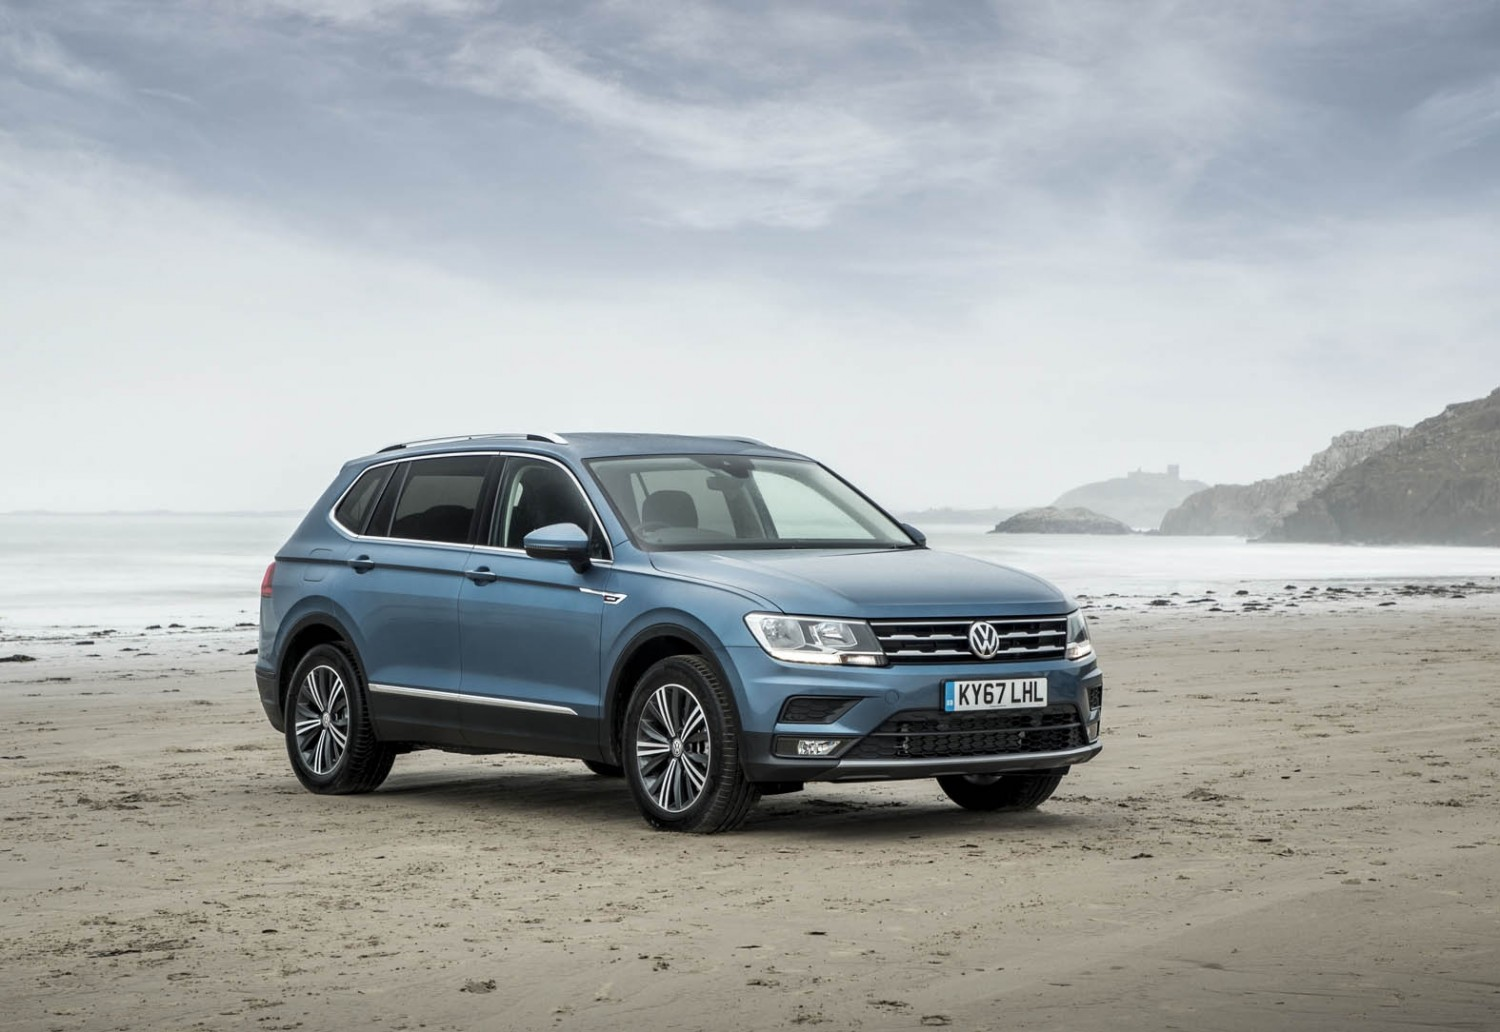 All Types tiguan length : VW stretches Tiguan credentials | Eurekar